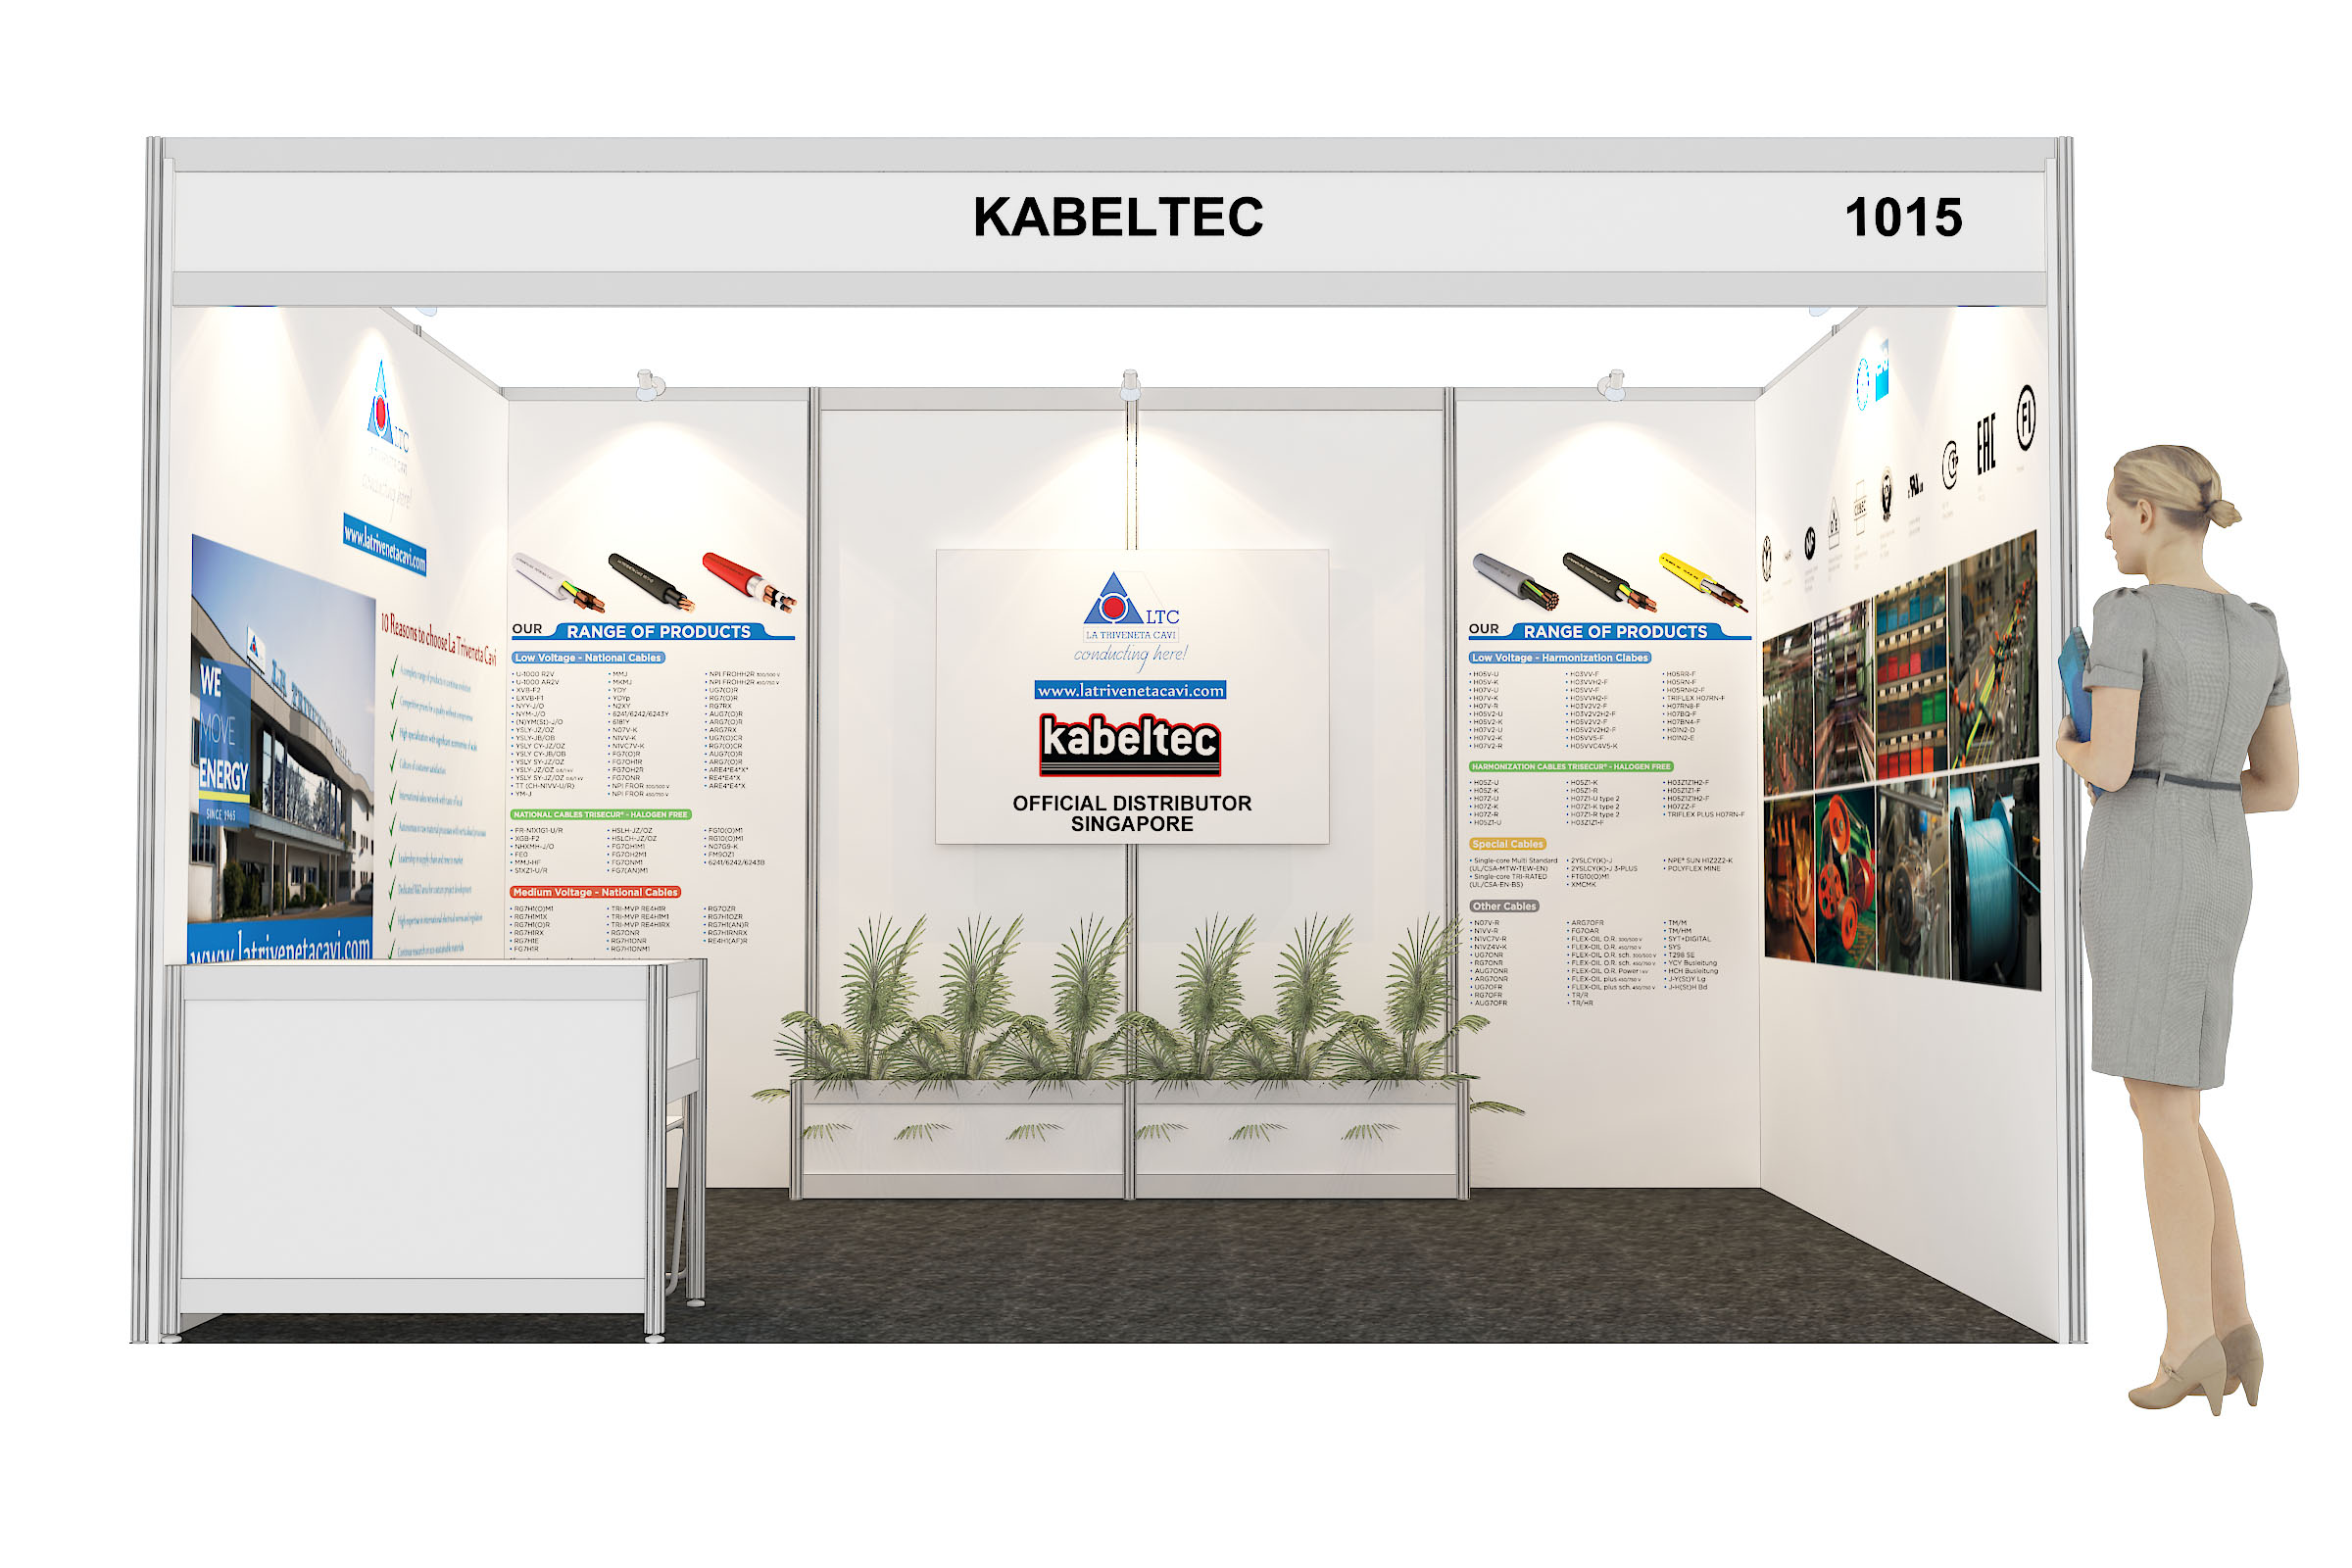 Kabeltec booth to EPRE 2017 exhibition in Malaysia